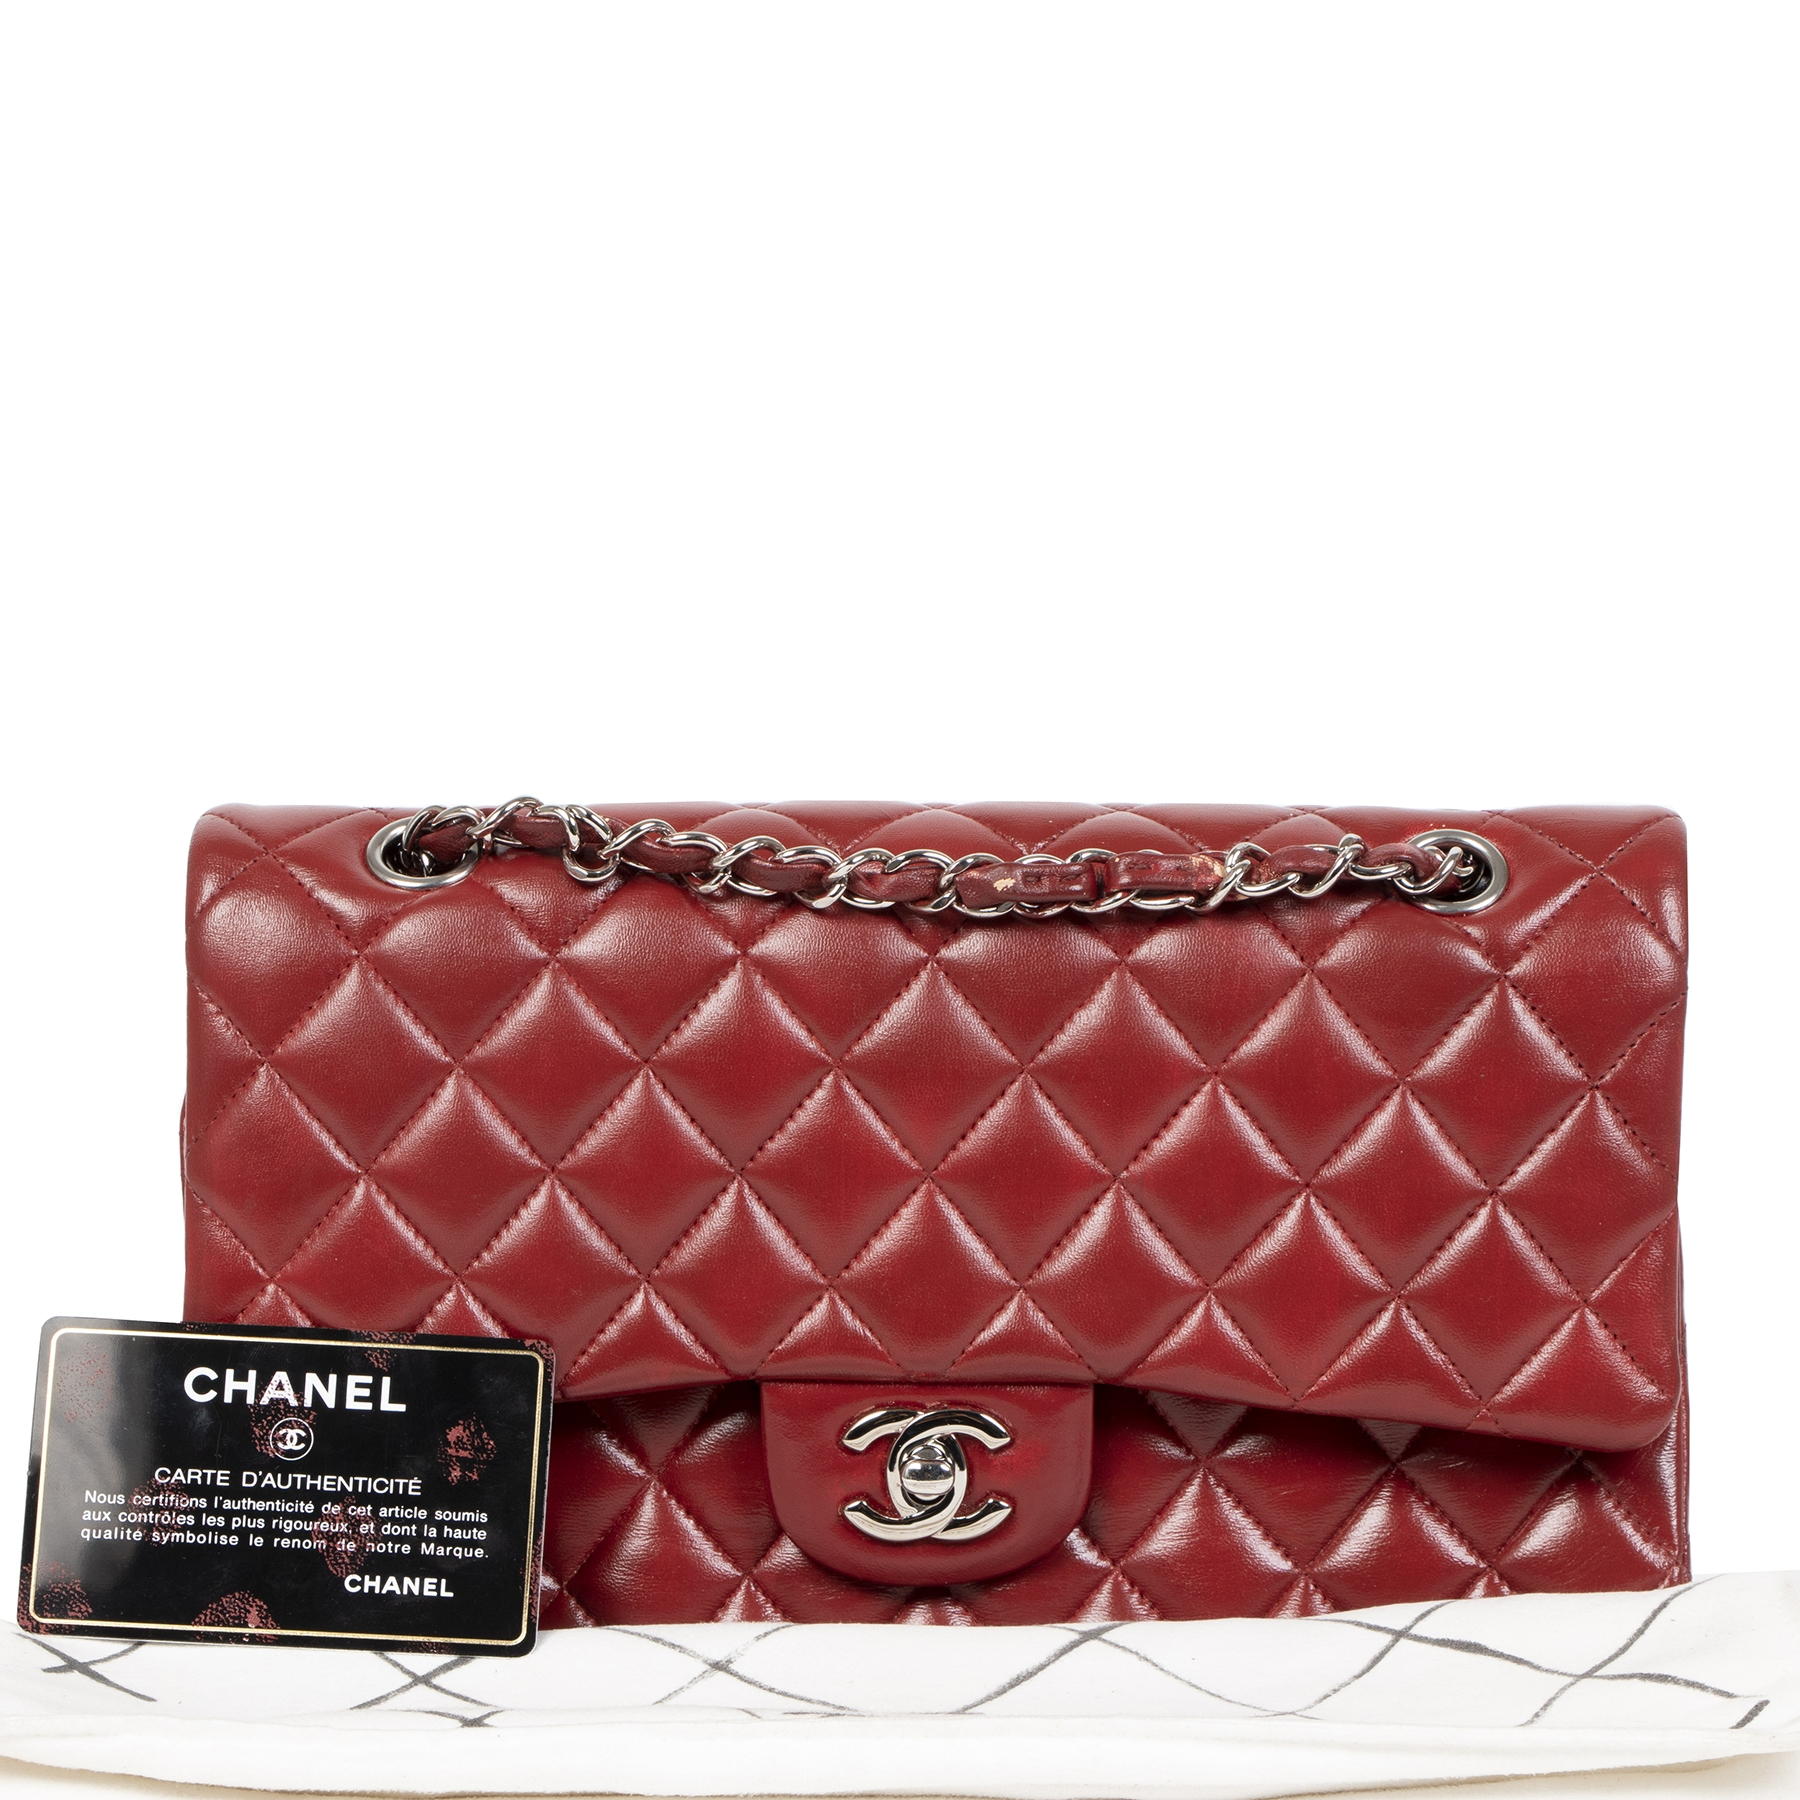 The webshop Labellov is selling Chanel Medium Classic Flap Bag / repainted for the best price at Labellov